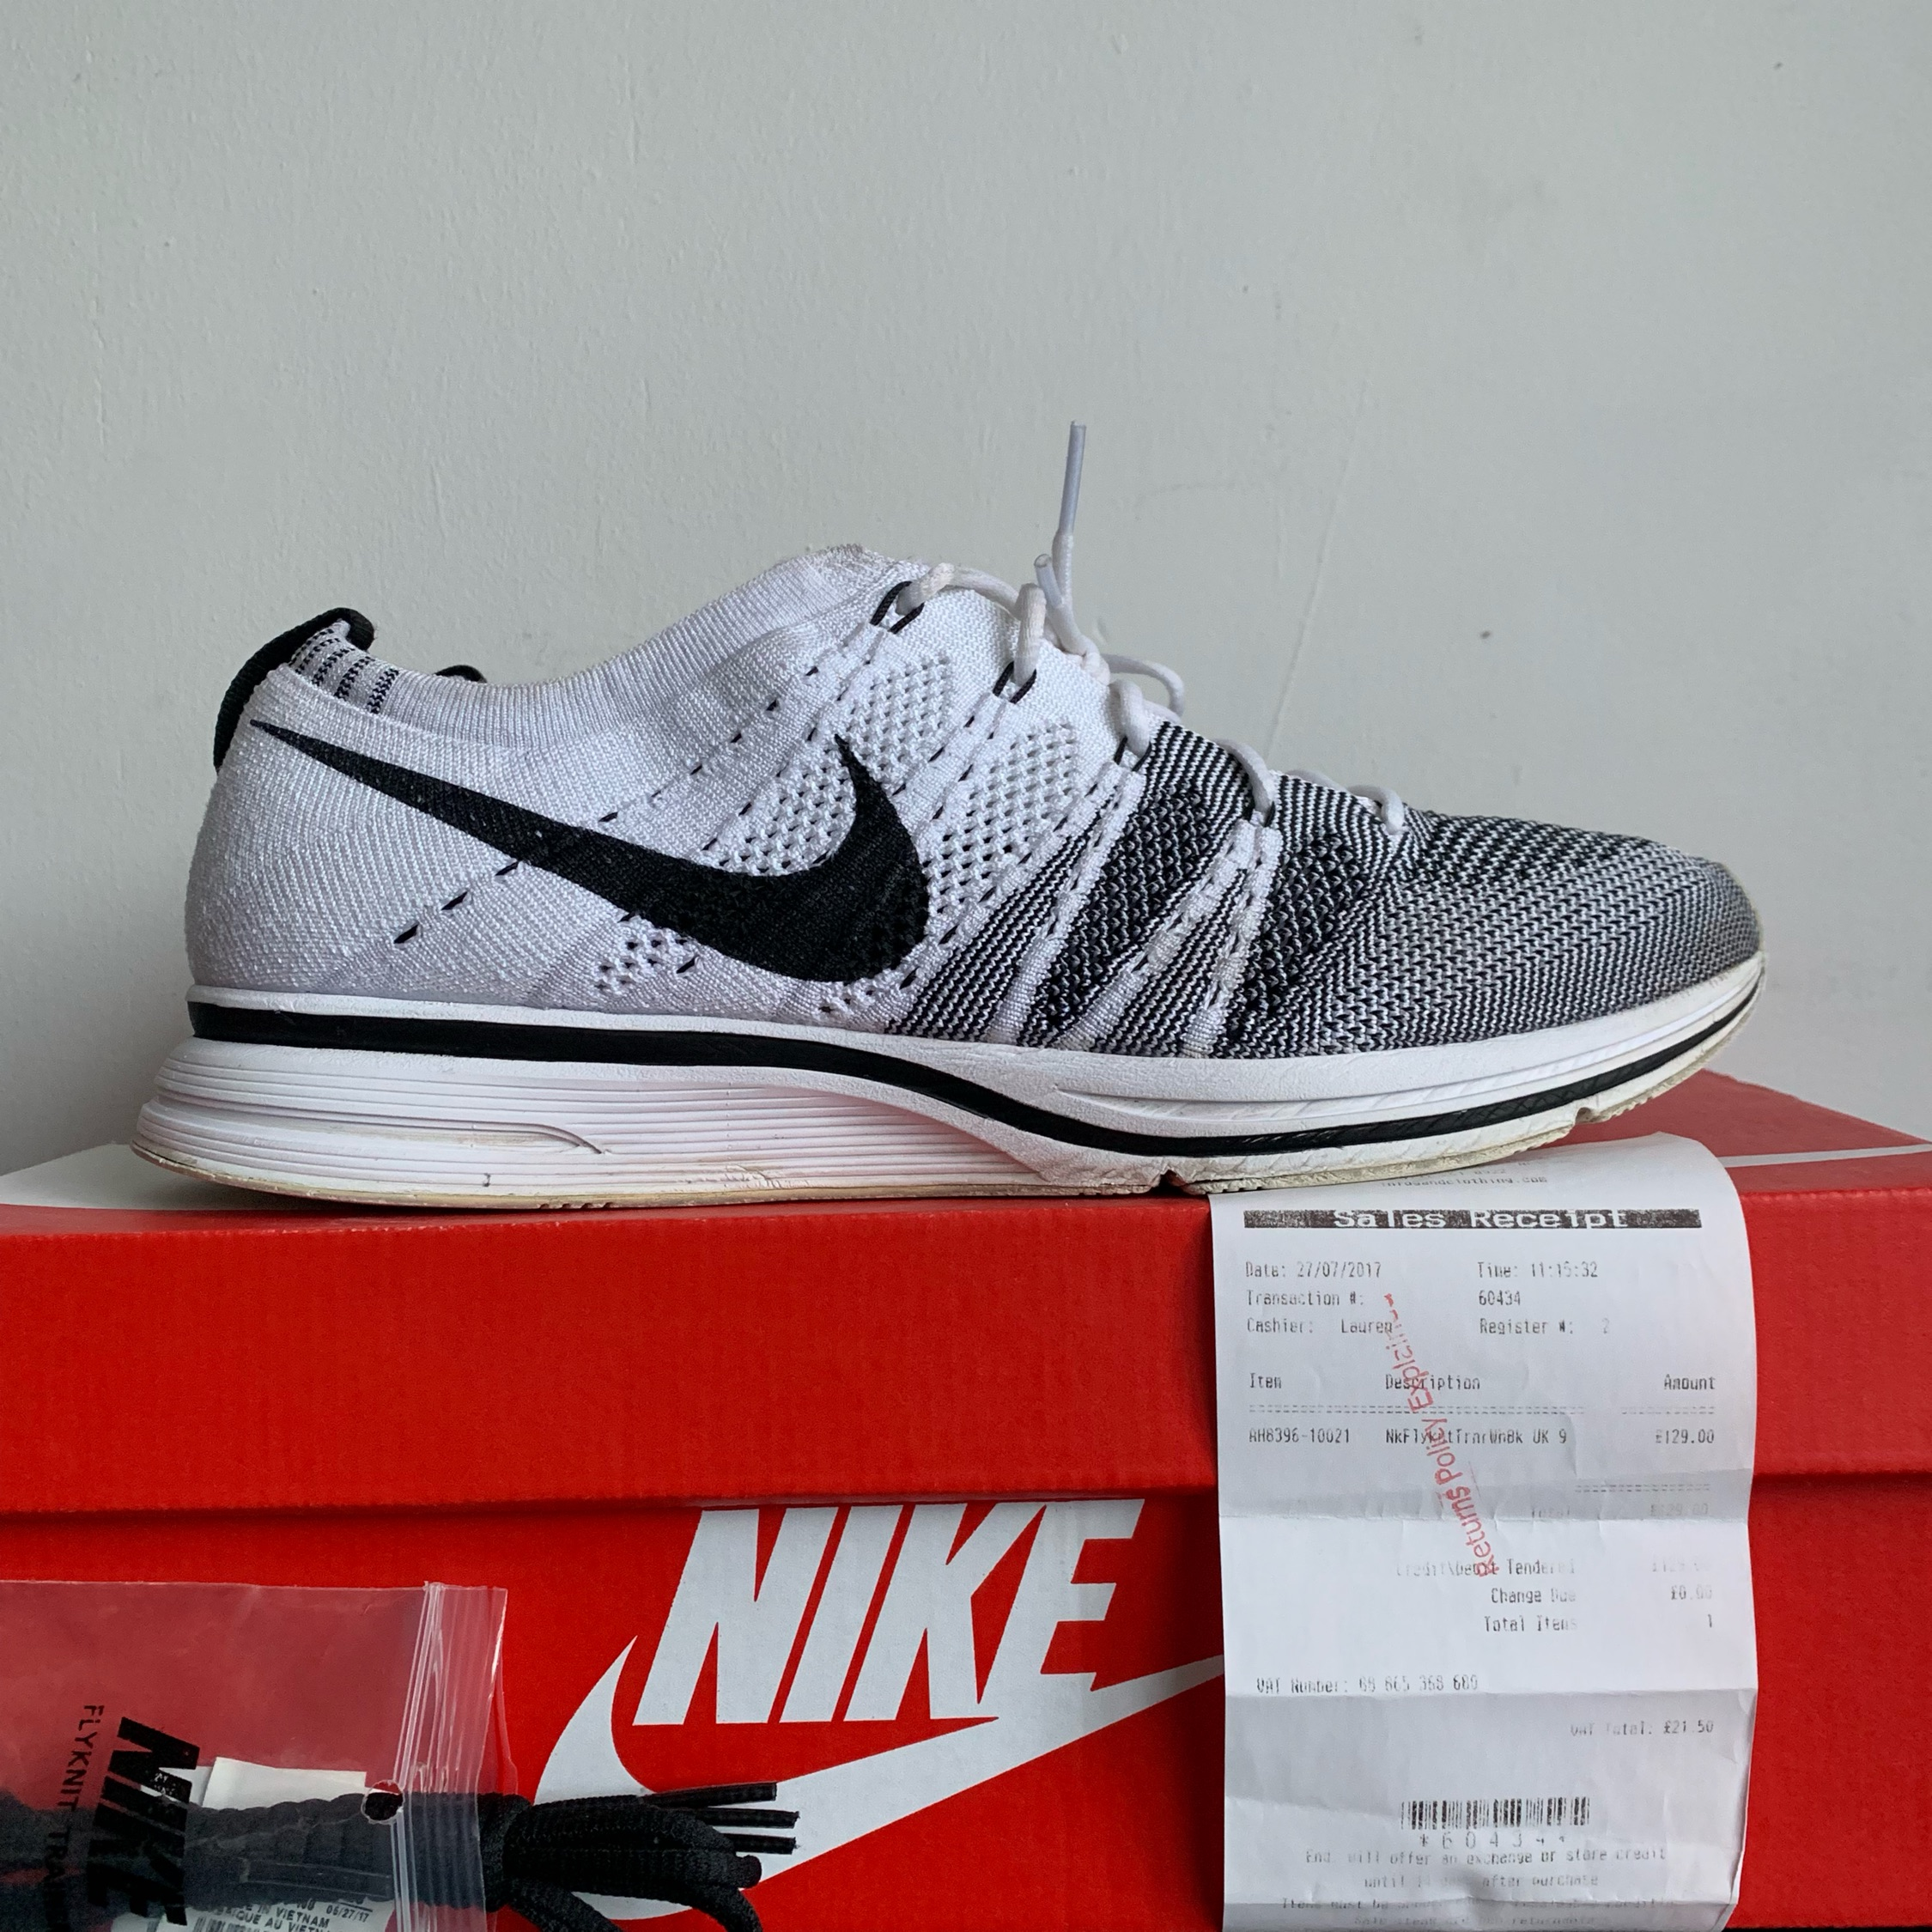 Nike Flyknit Trainer / Kanye West Colourway / Uk 9